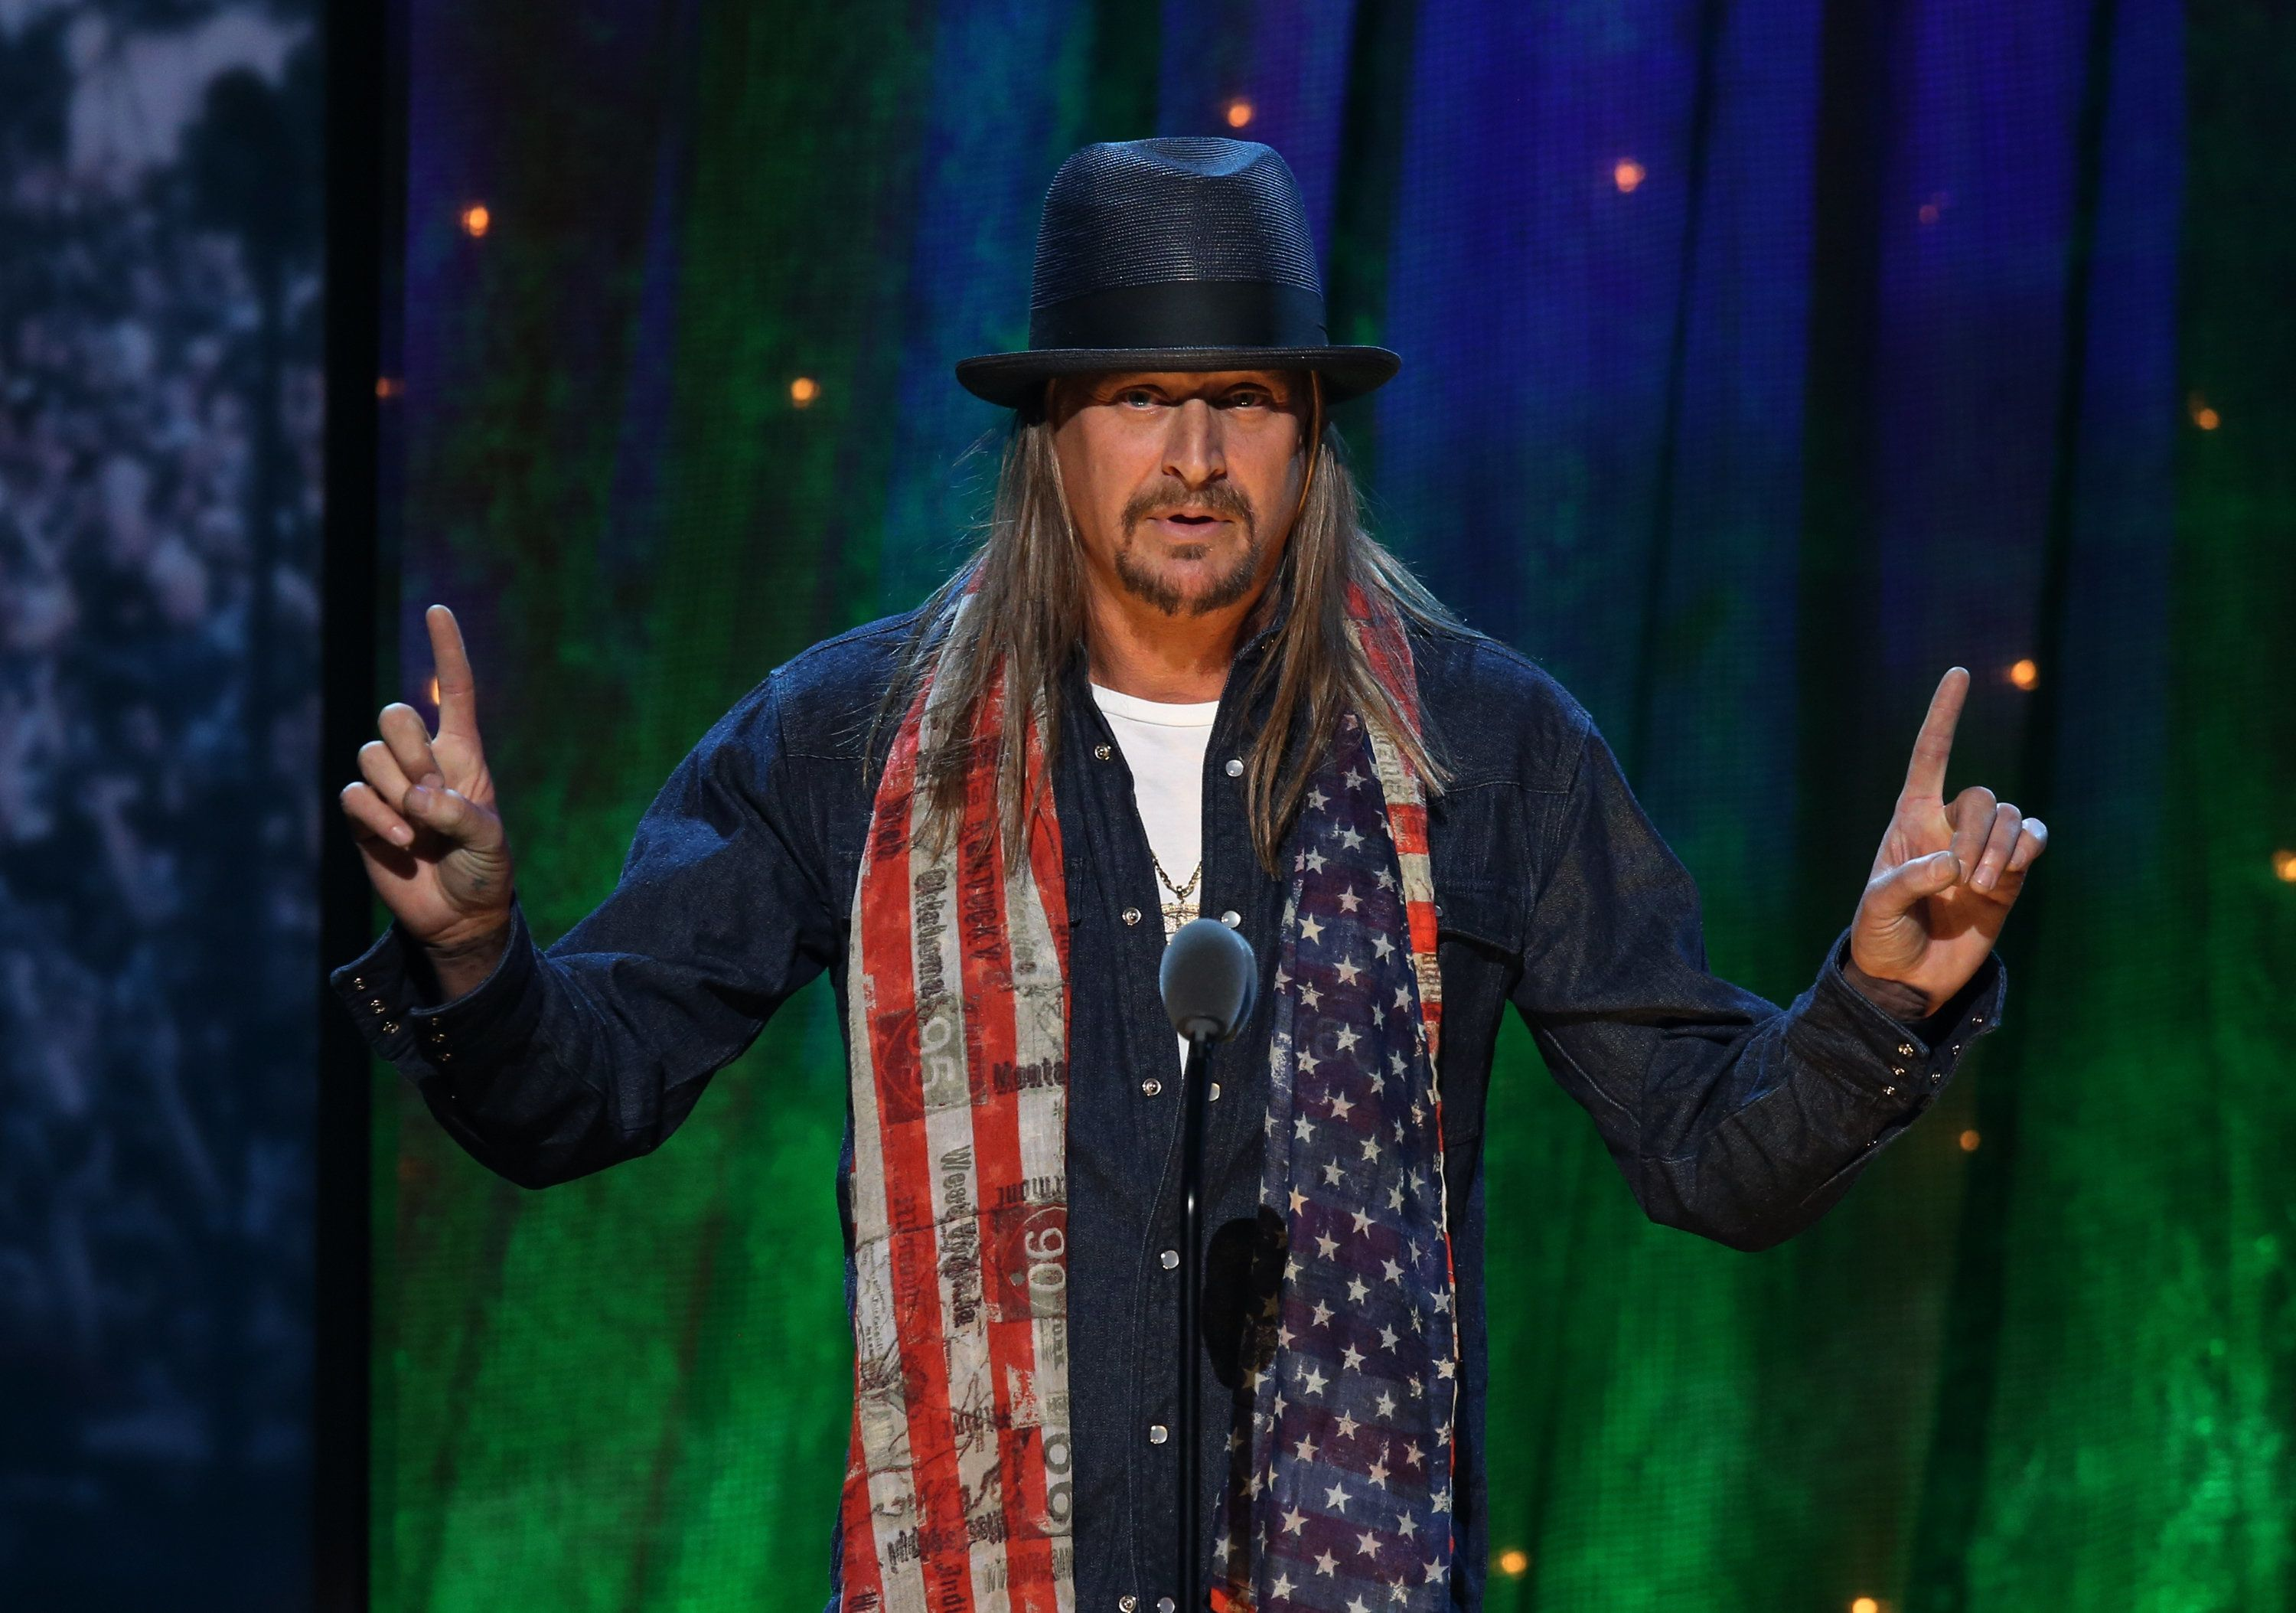 NEW YORK, NEW YORK - APRIL 08:  Kid Rock speaks onstage at the 31st Annual Rock And Roll Hall Of Fame Induction Ceremony at Barclays Center of Brooklyn on April 8, 2016 in New York City.  (Photo by Kevin Kane/WireImage for Rock and Roll Hall of Fame)